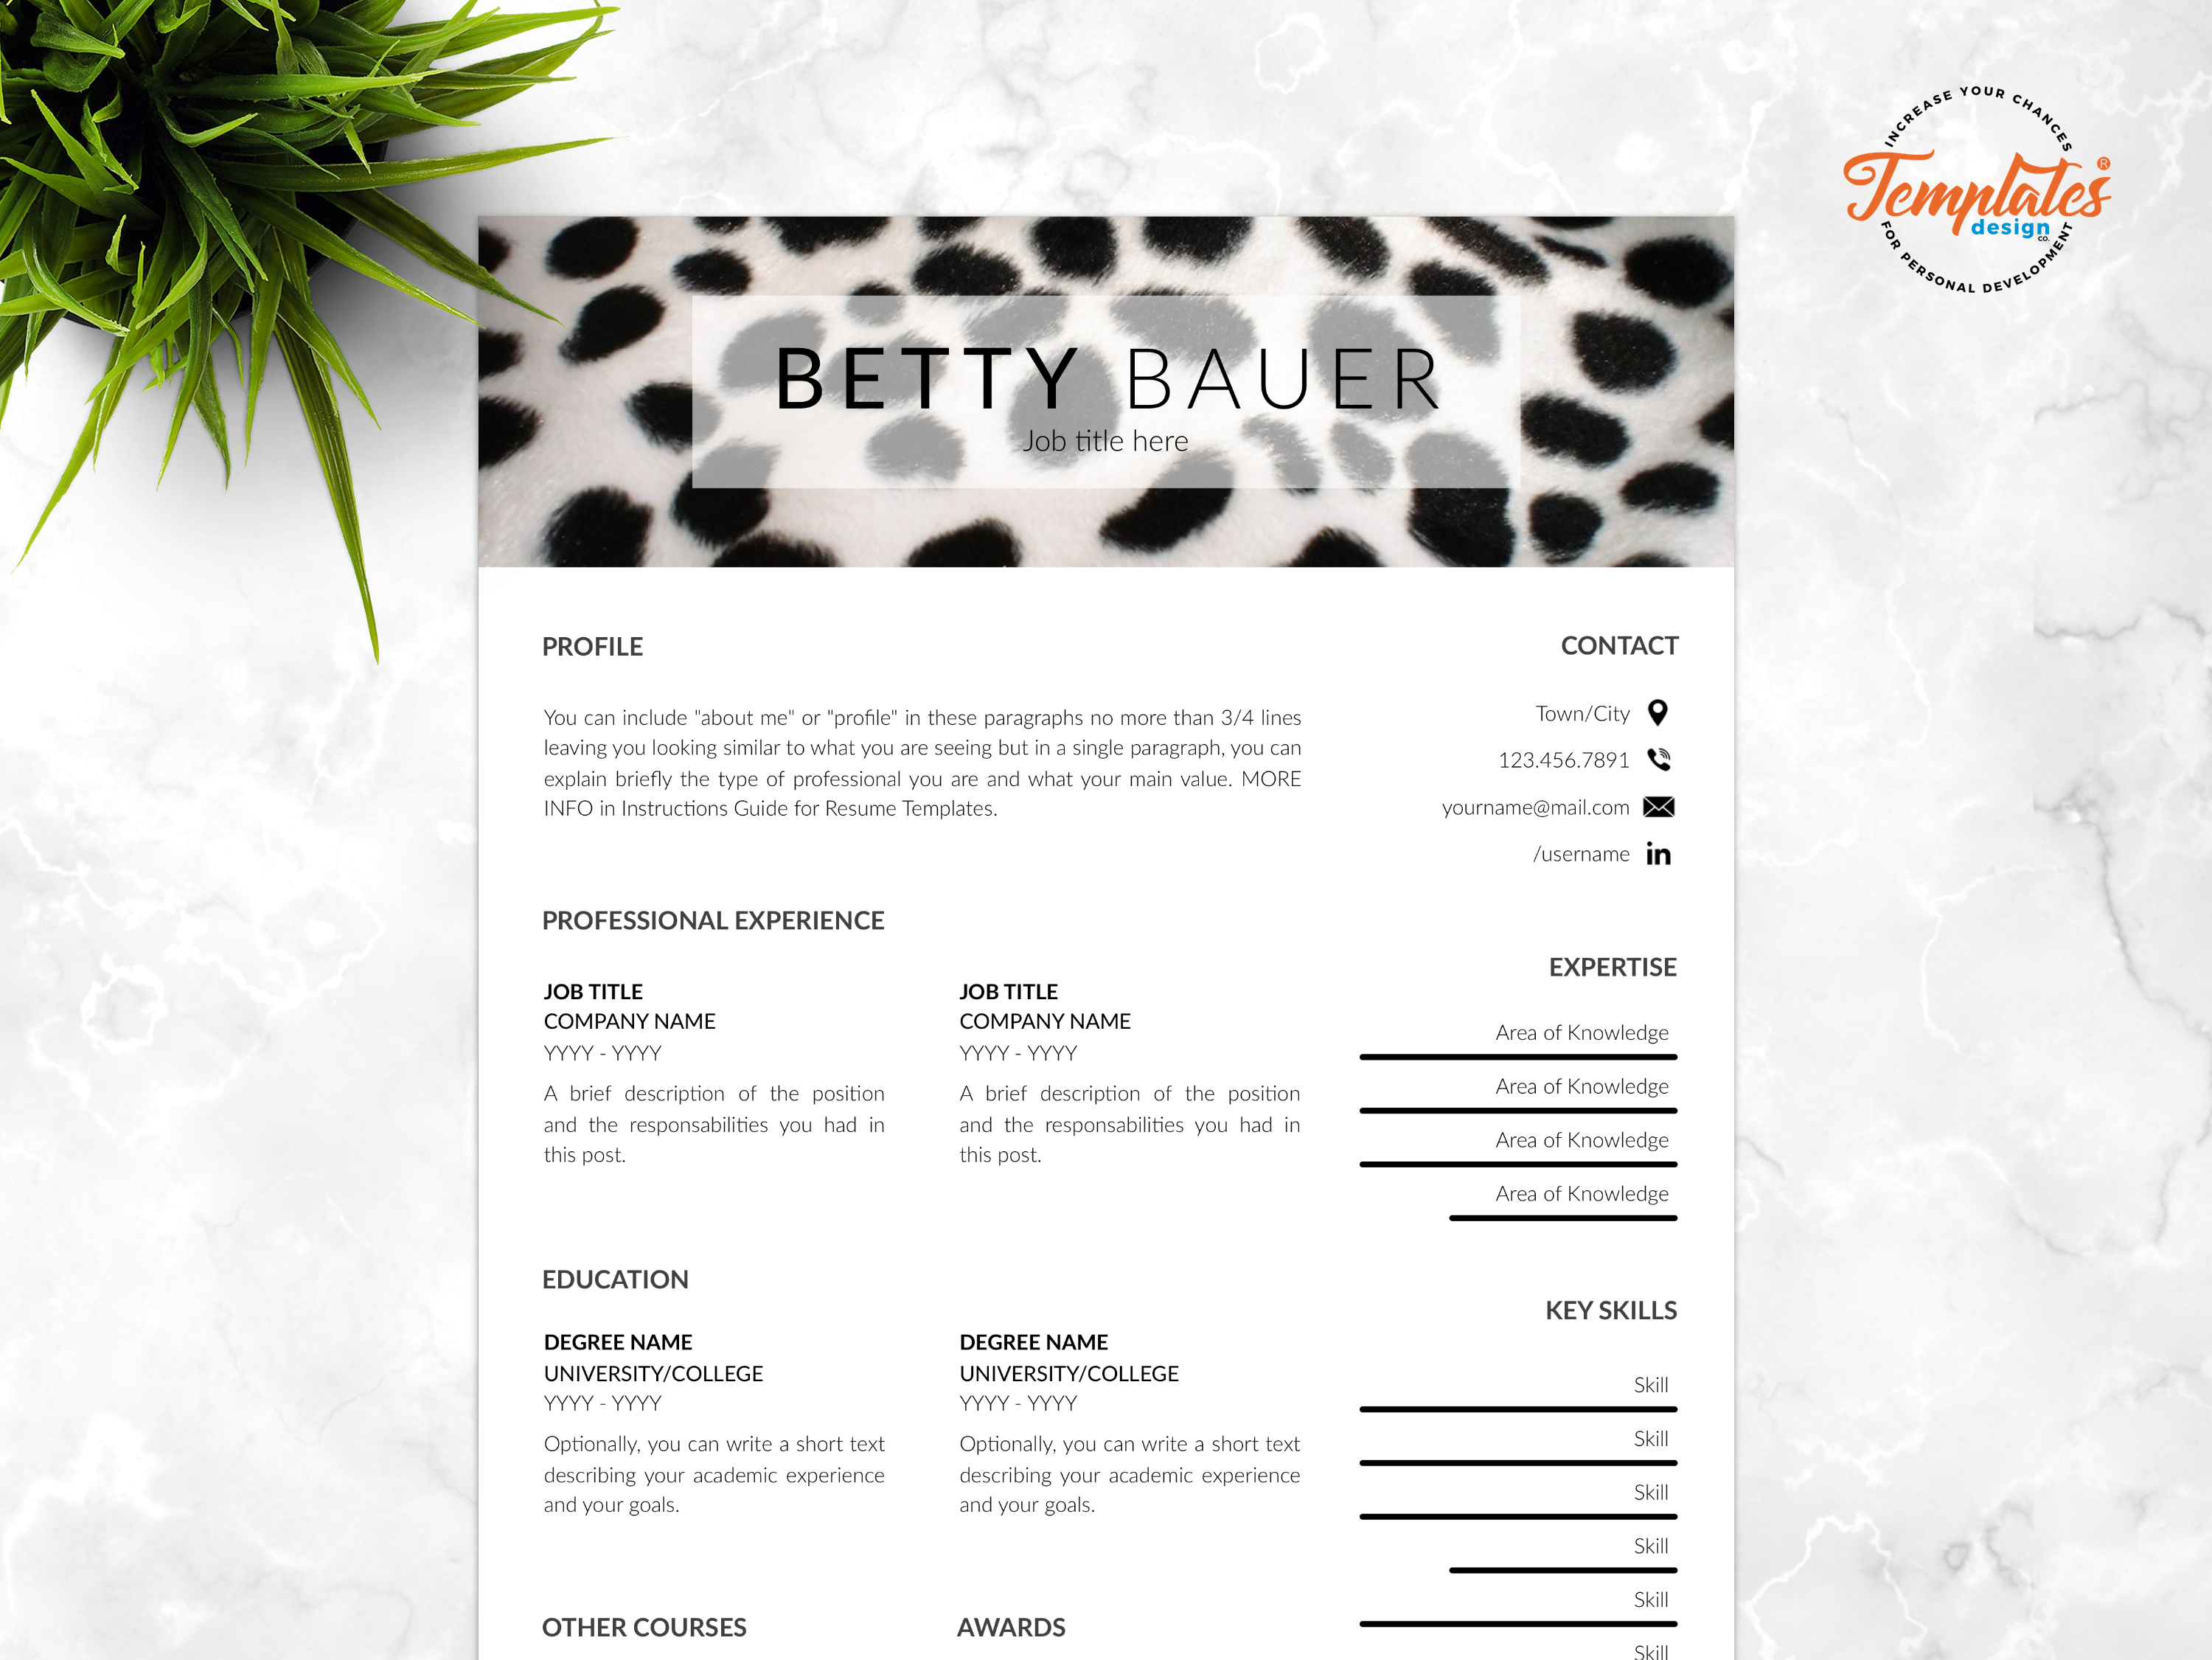 Bauer Resume Template